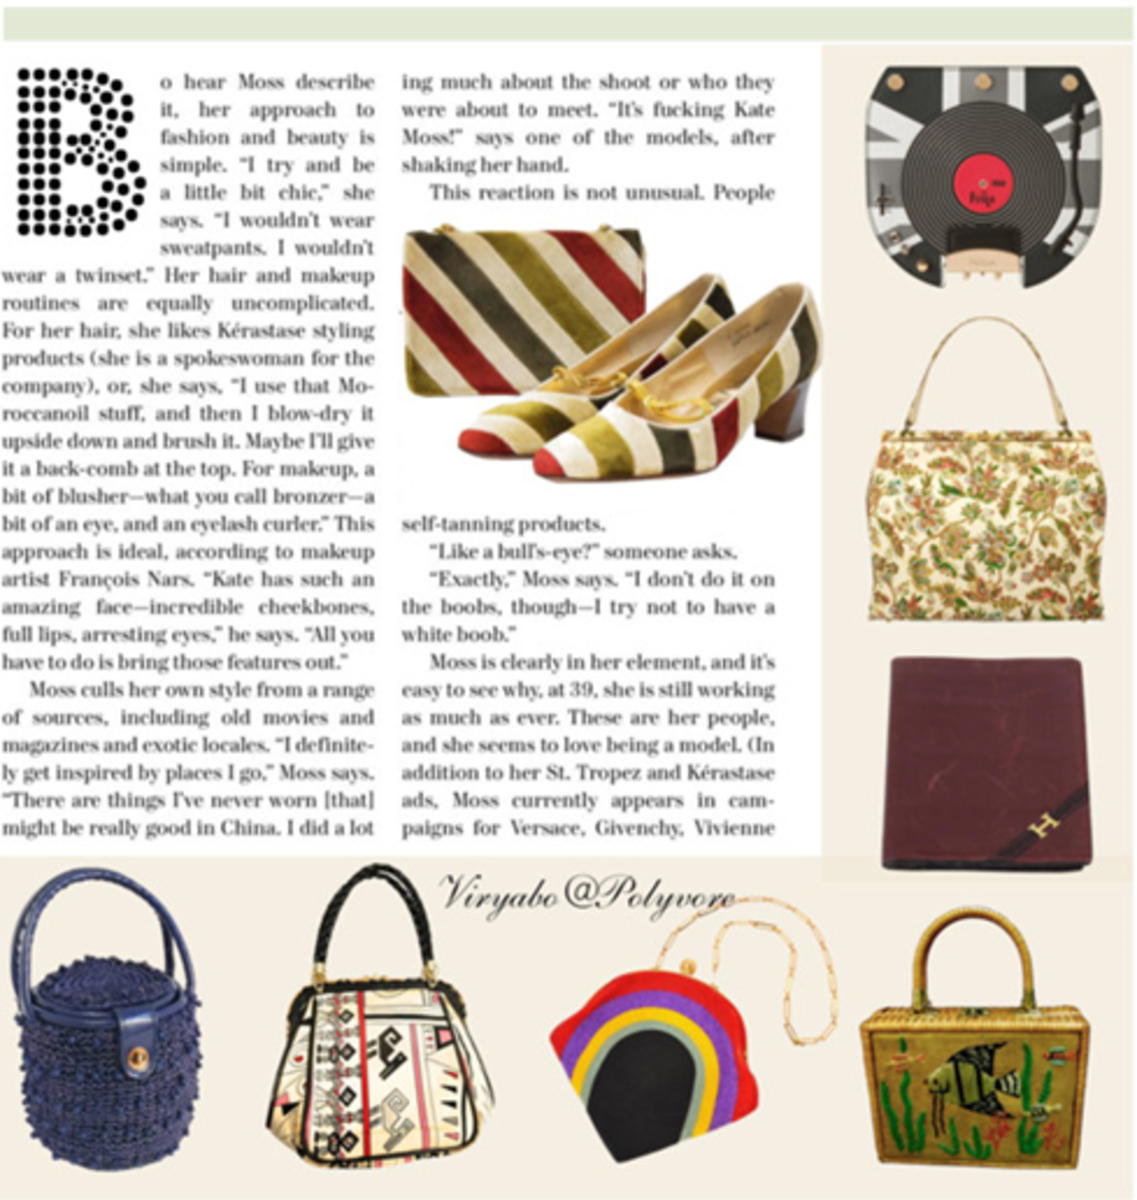 Vintage handbags of the swinging sixties. This was an era when personal freedom was the new movement. Handbags was no longer branded fashion appendage, but rather became a matter of personal choice among fashionable women.